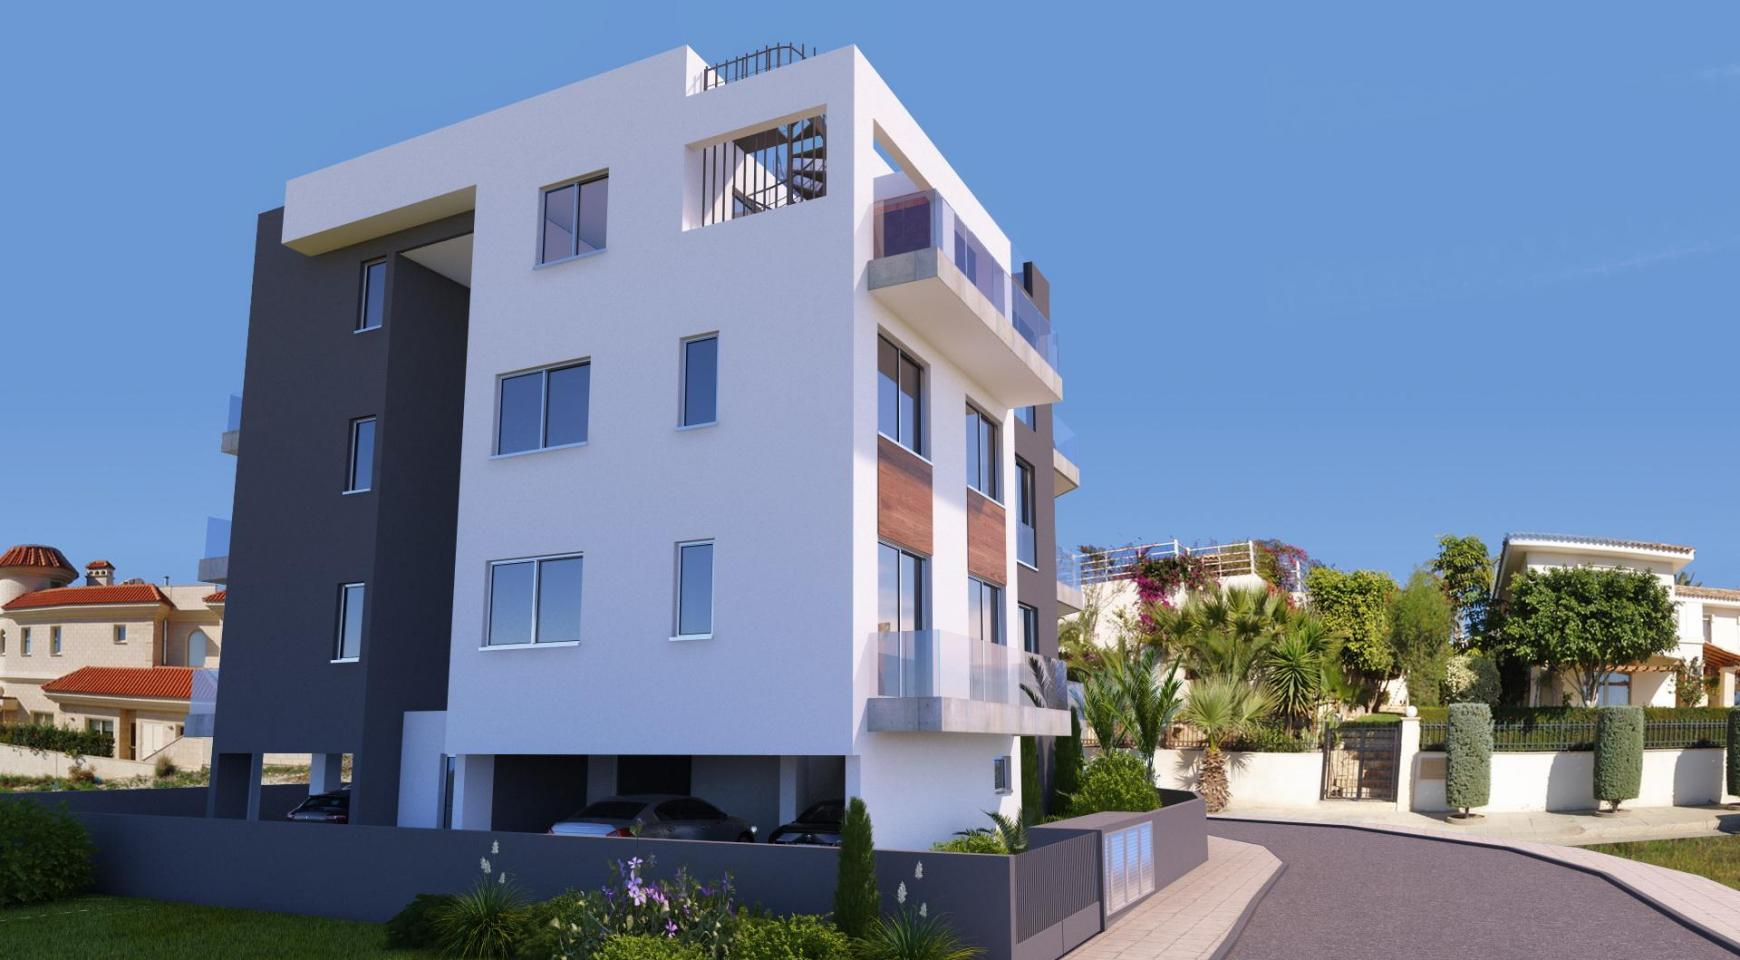 New 2 Bedroom Apartment in a Contemporary Building in Potamos Germasogeia - 5